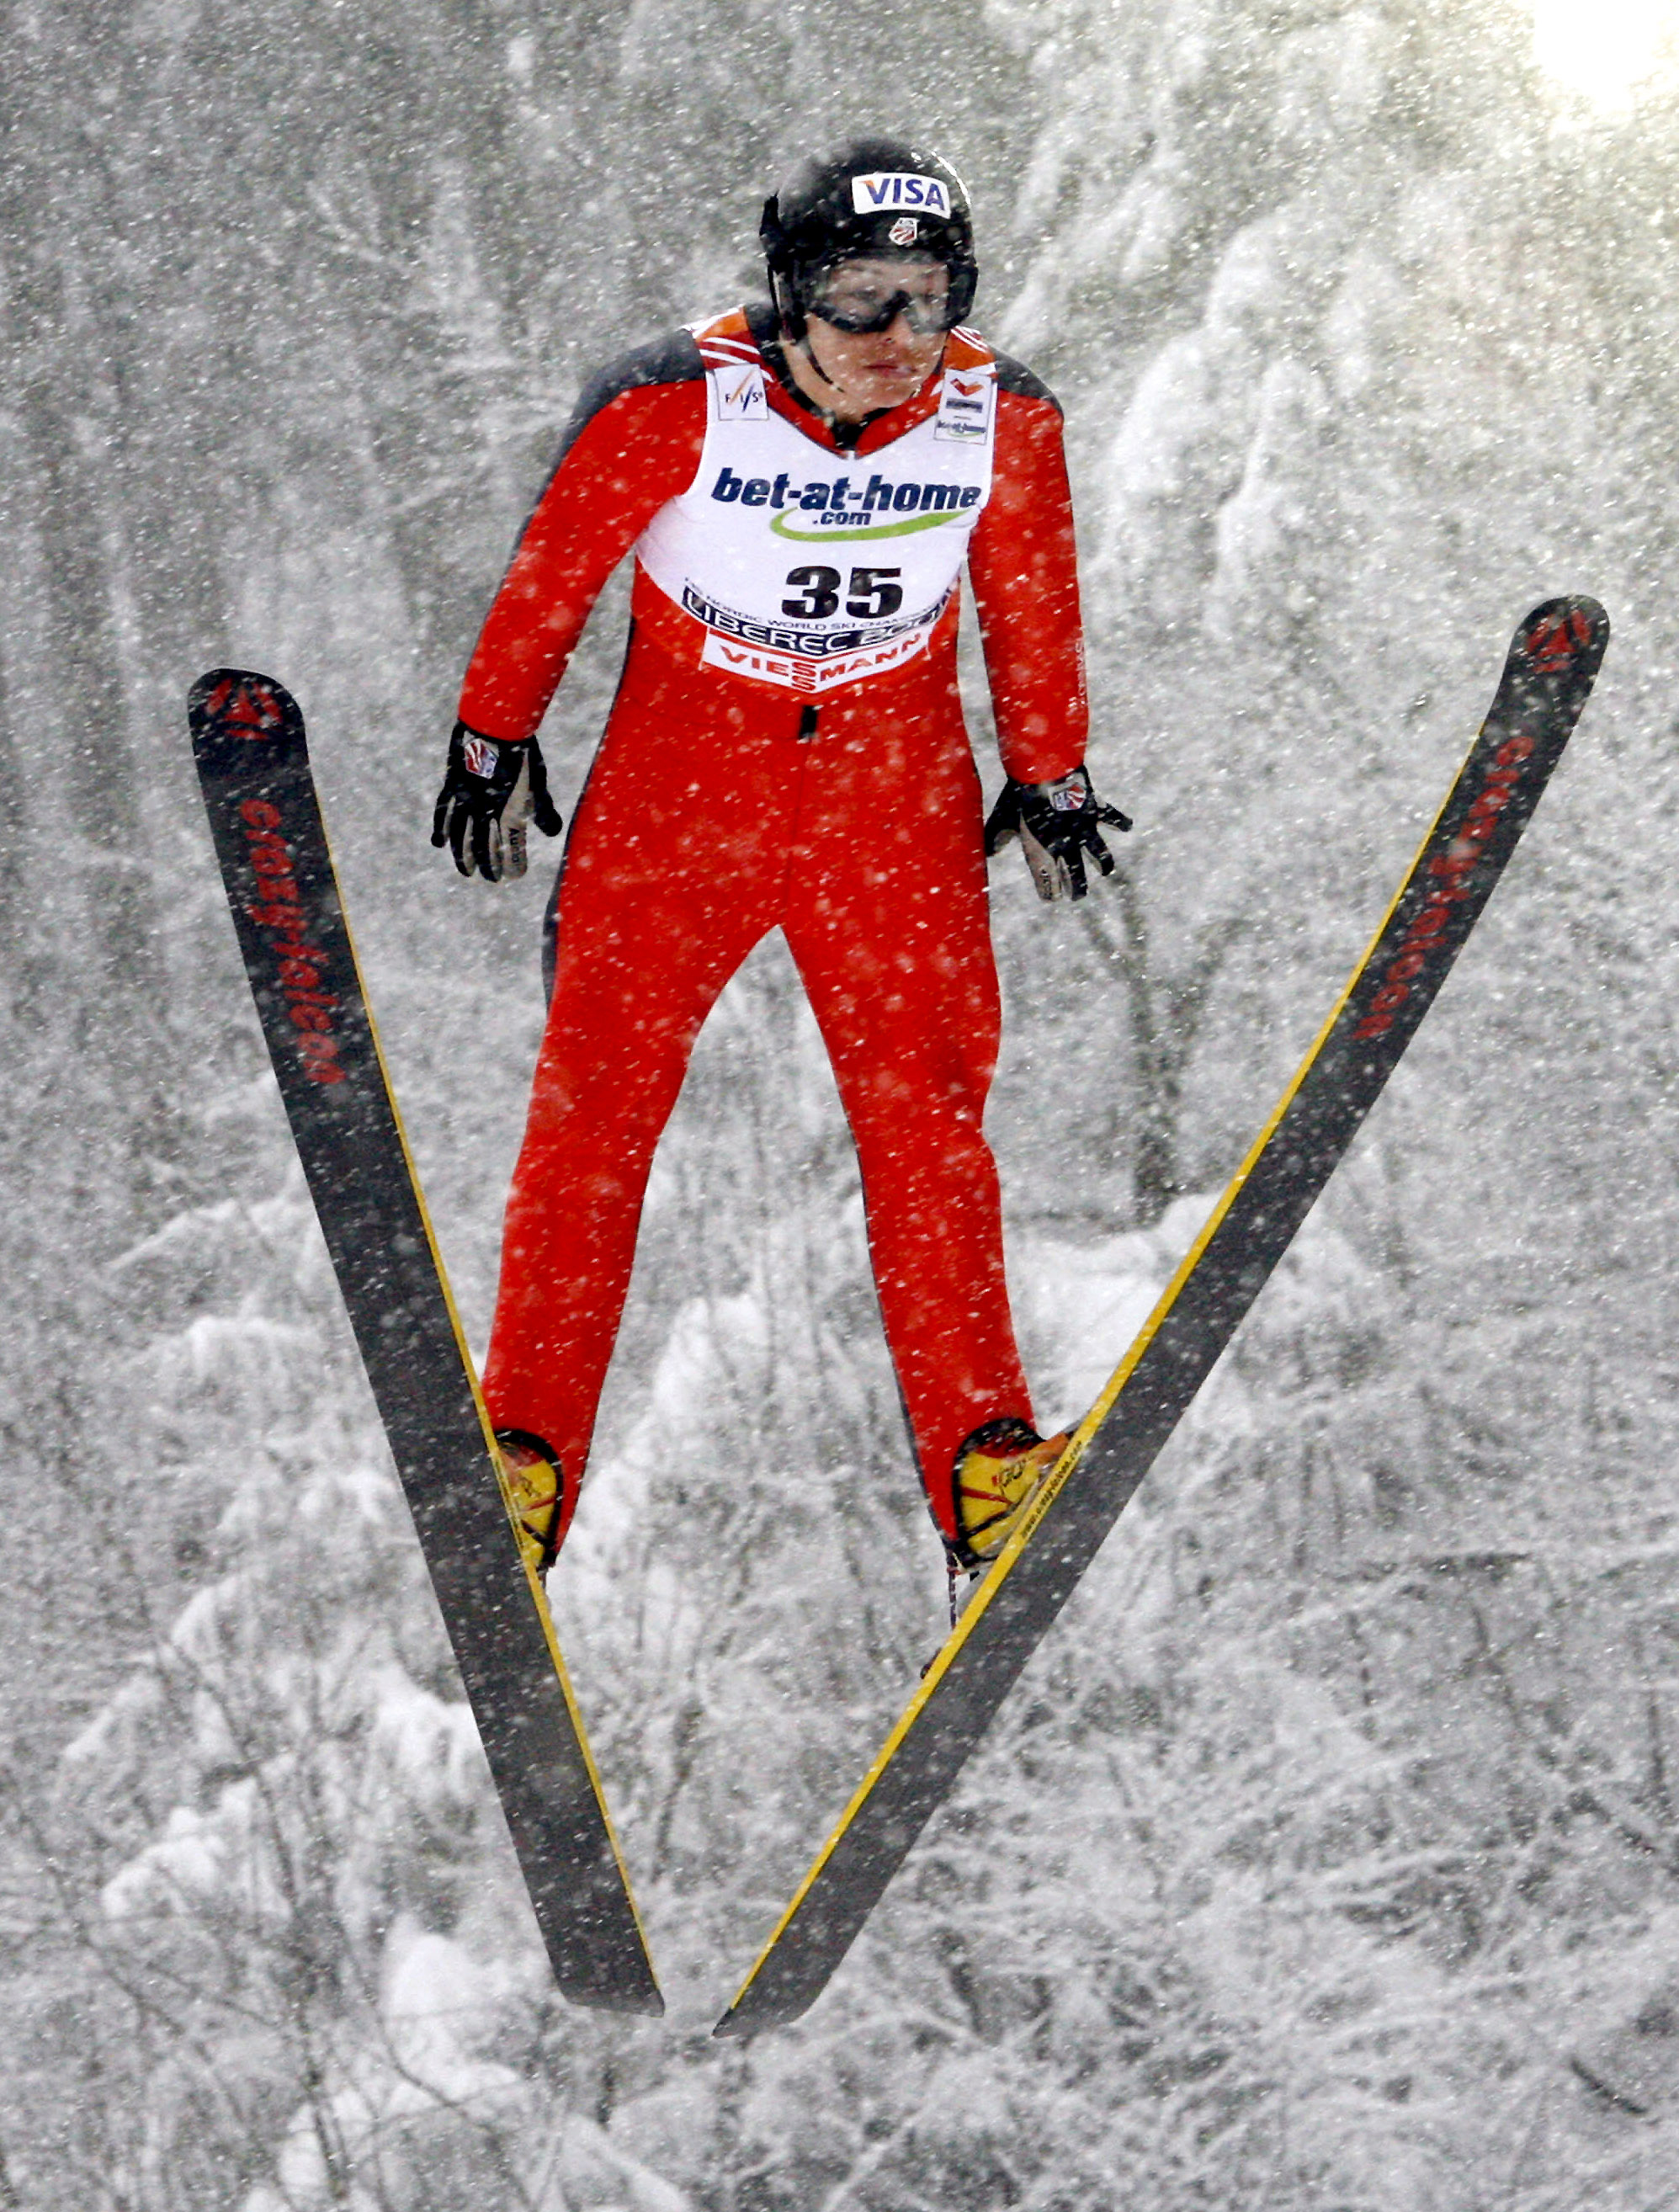 FIS Nordic World Ski Jumping Championship – Event One